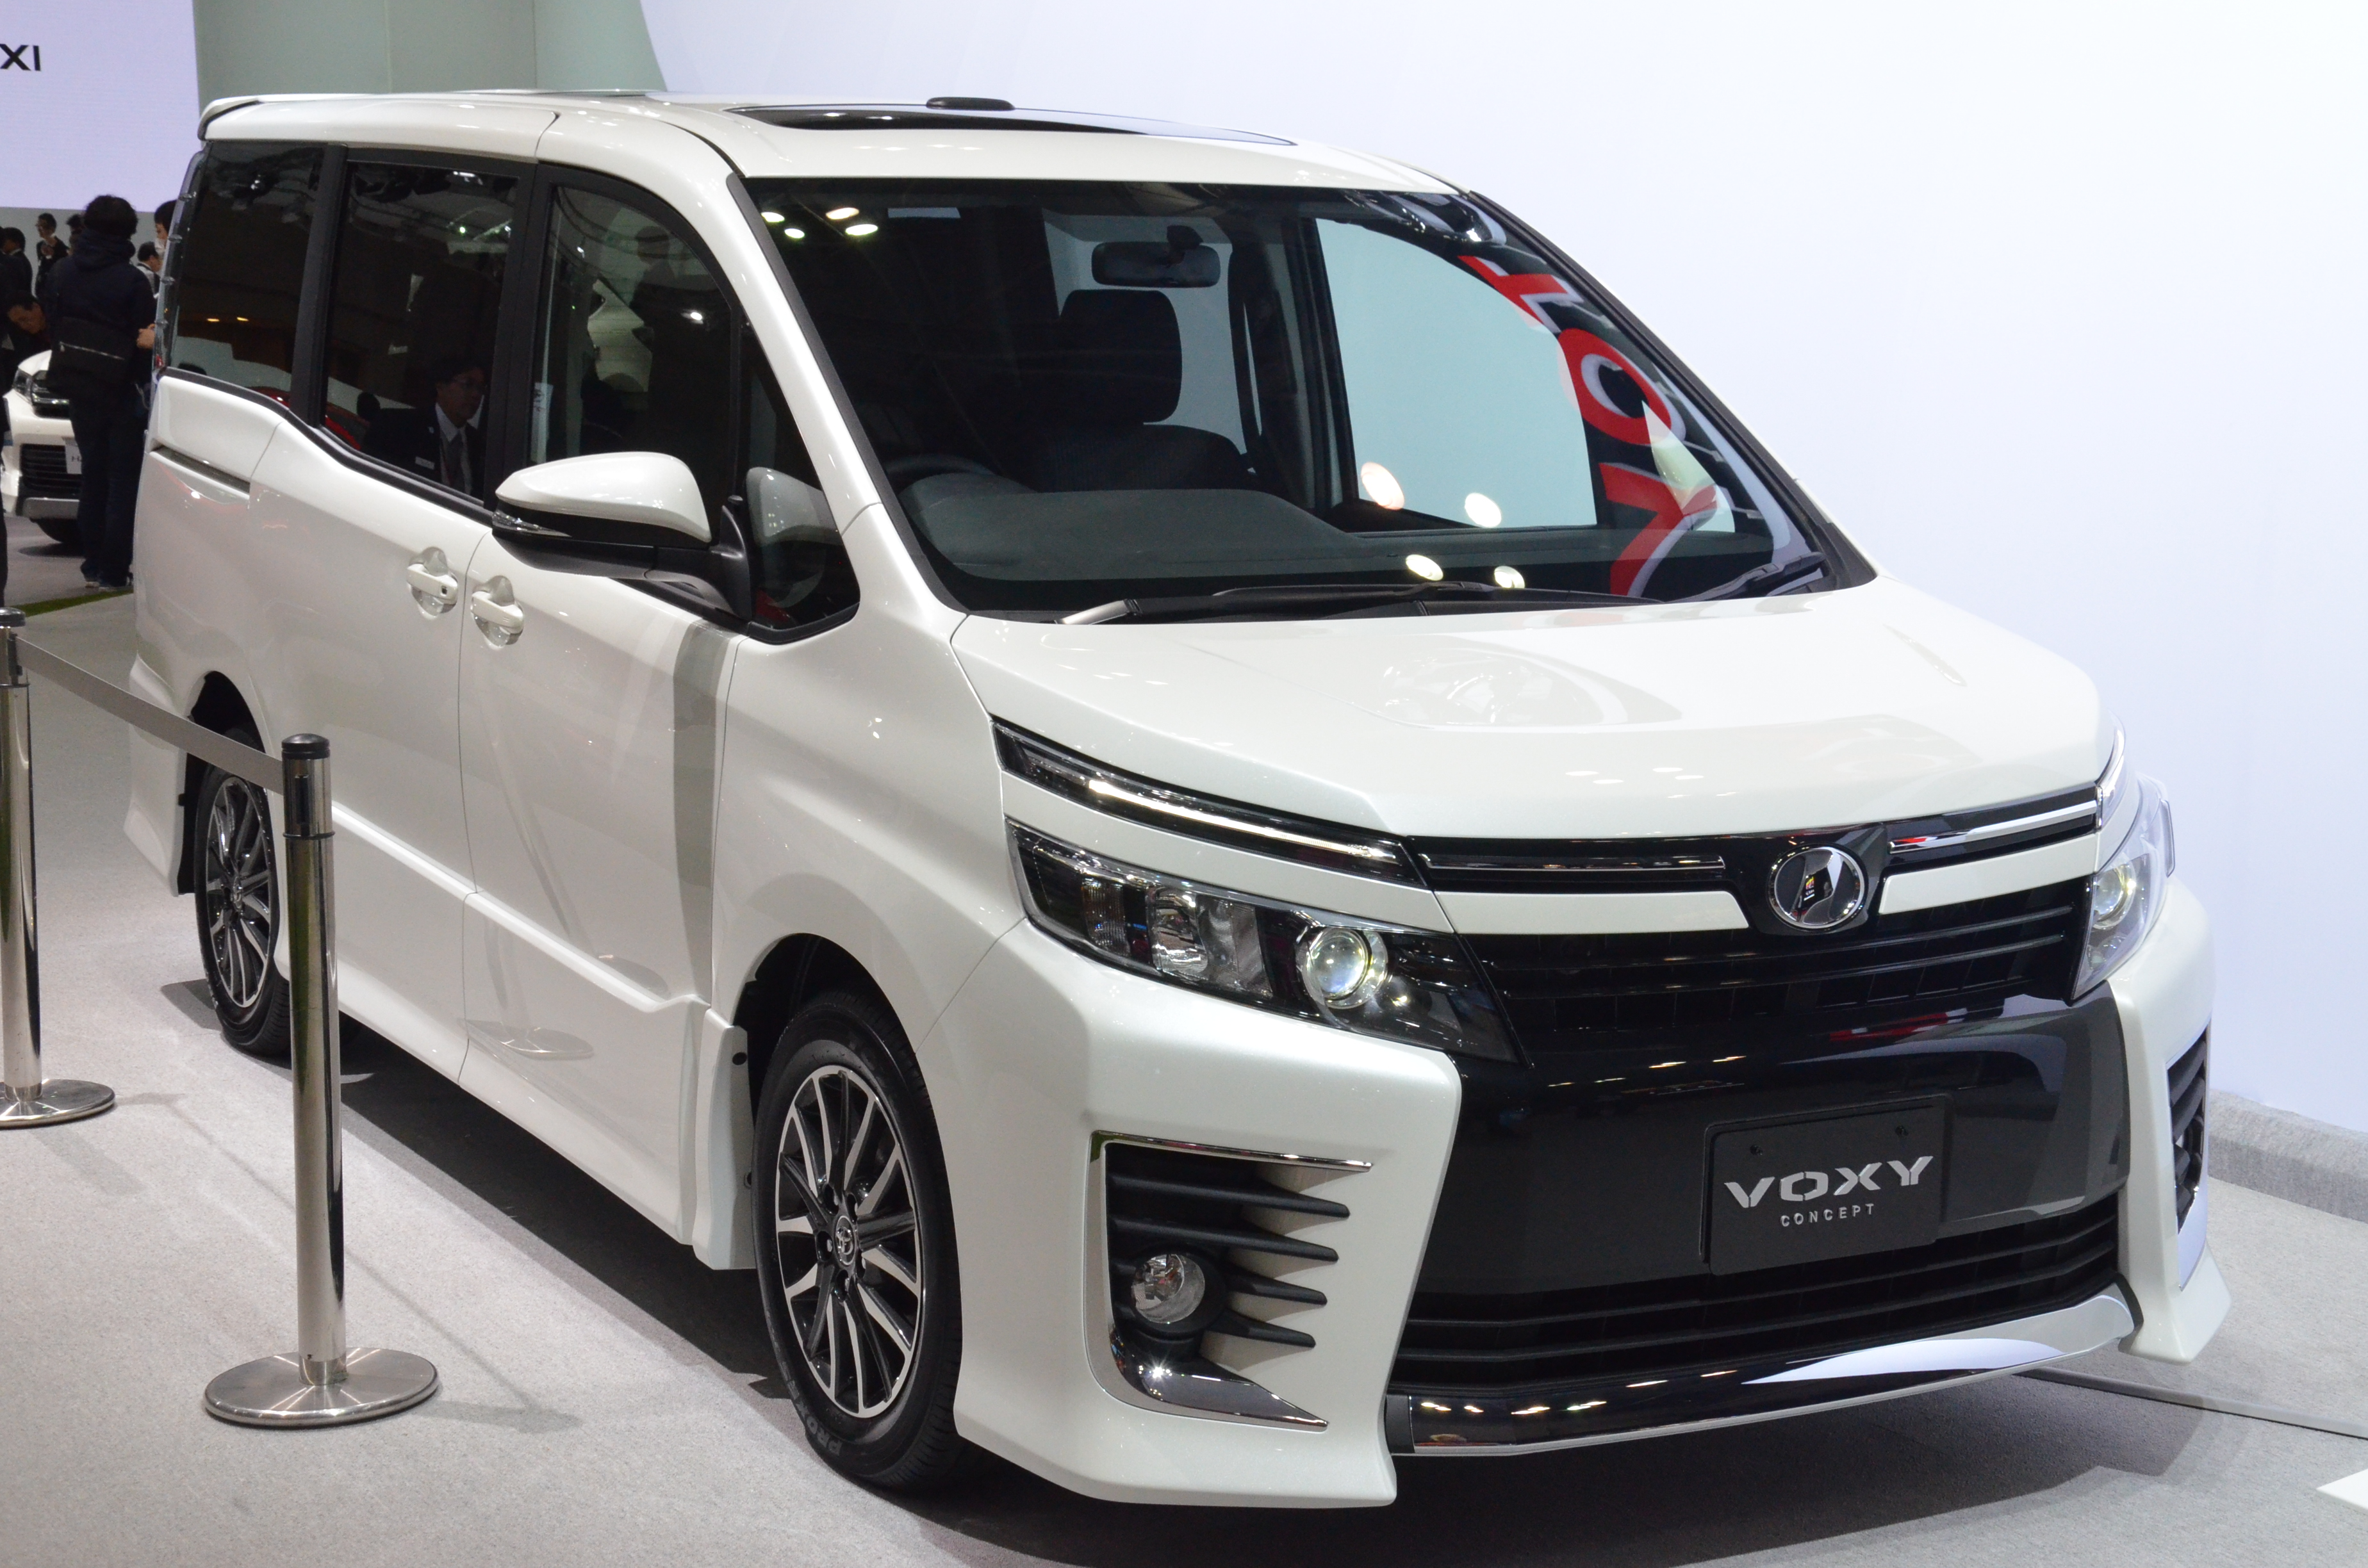 2014 Toyota Noah and Voxy previewed at Tokyo 2013 Paul Tan ...